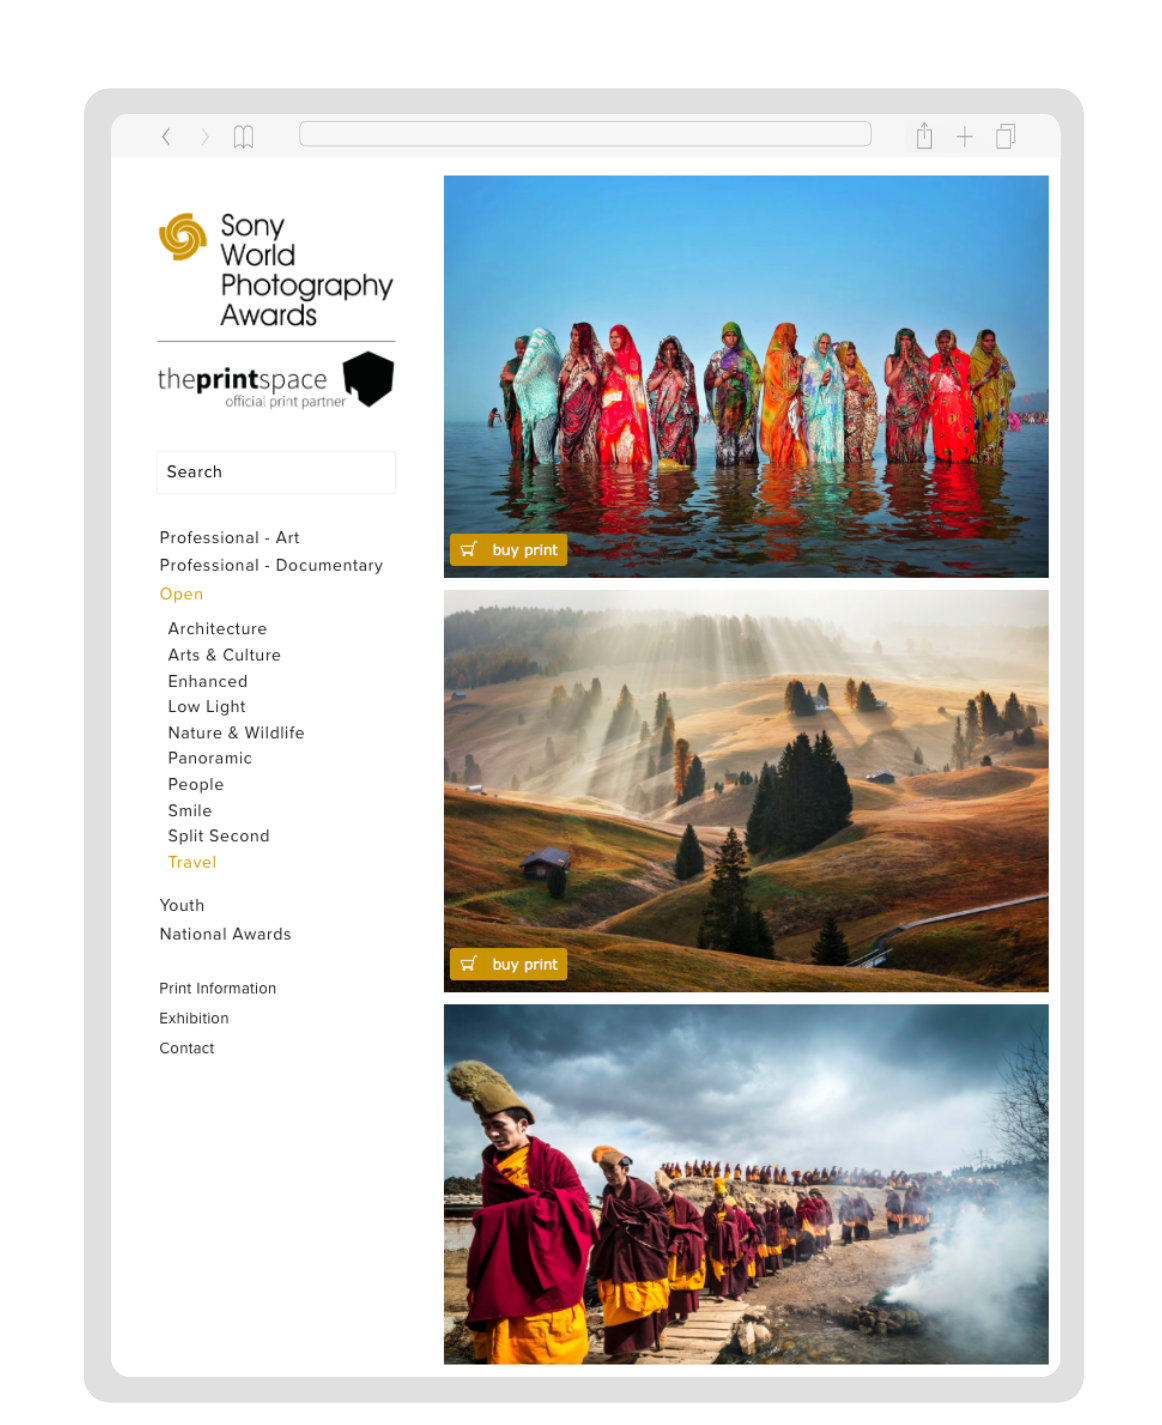 Sony World Photography Awards - Website Design & Build.Implementation for online print orders.